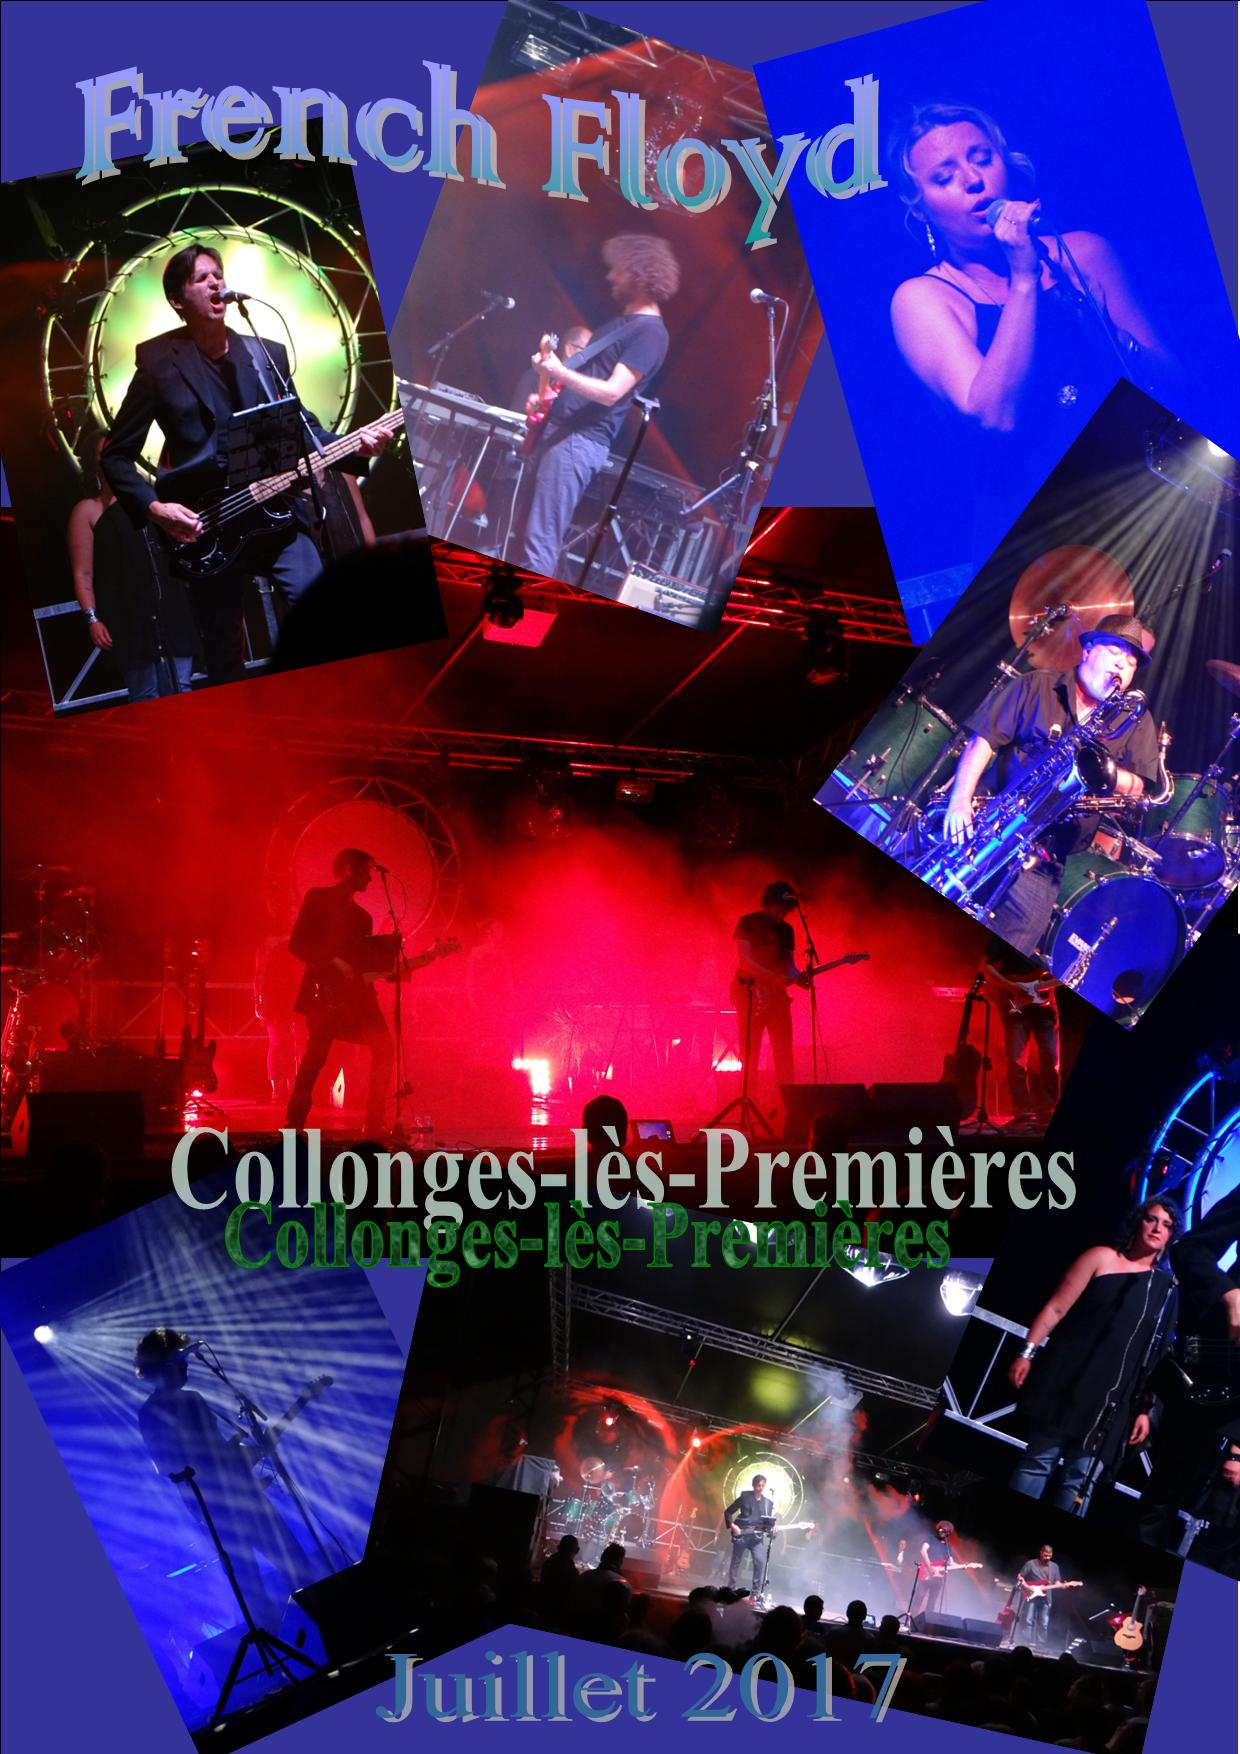 French Floyd en concert - Collonges.jpg